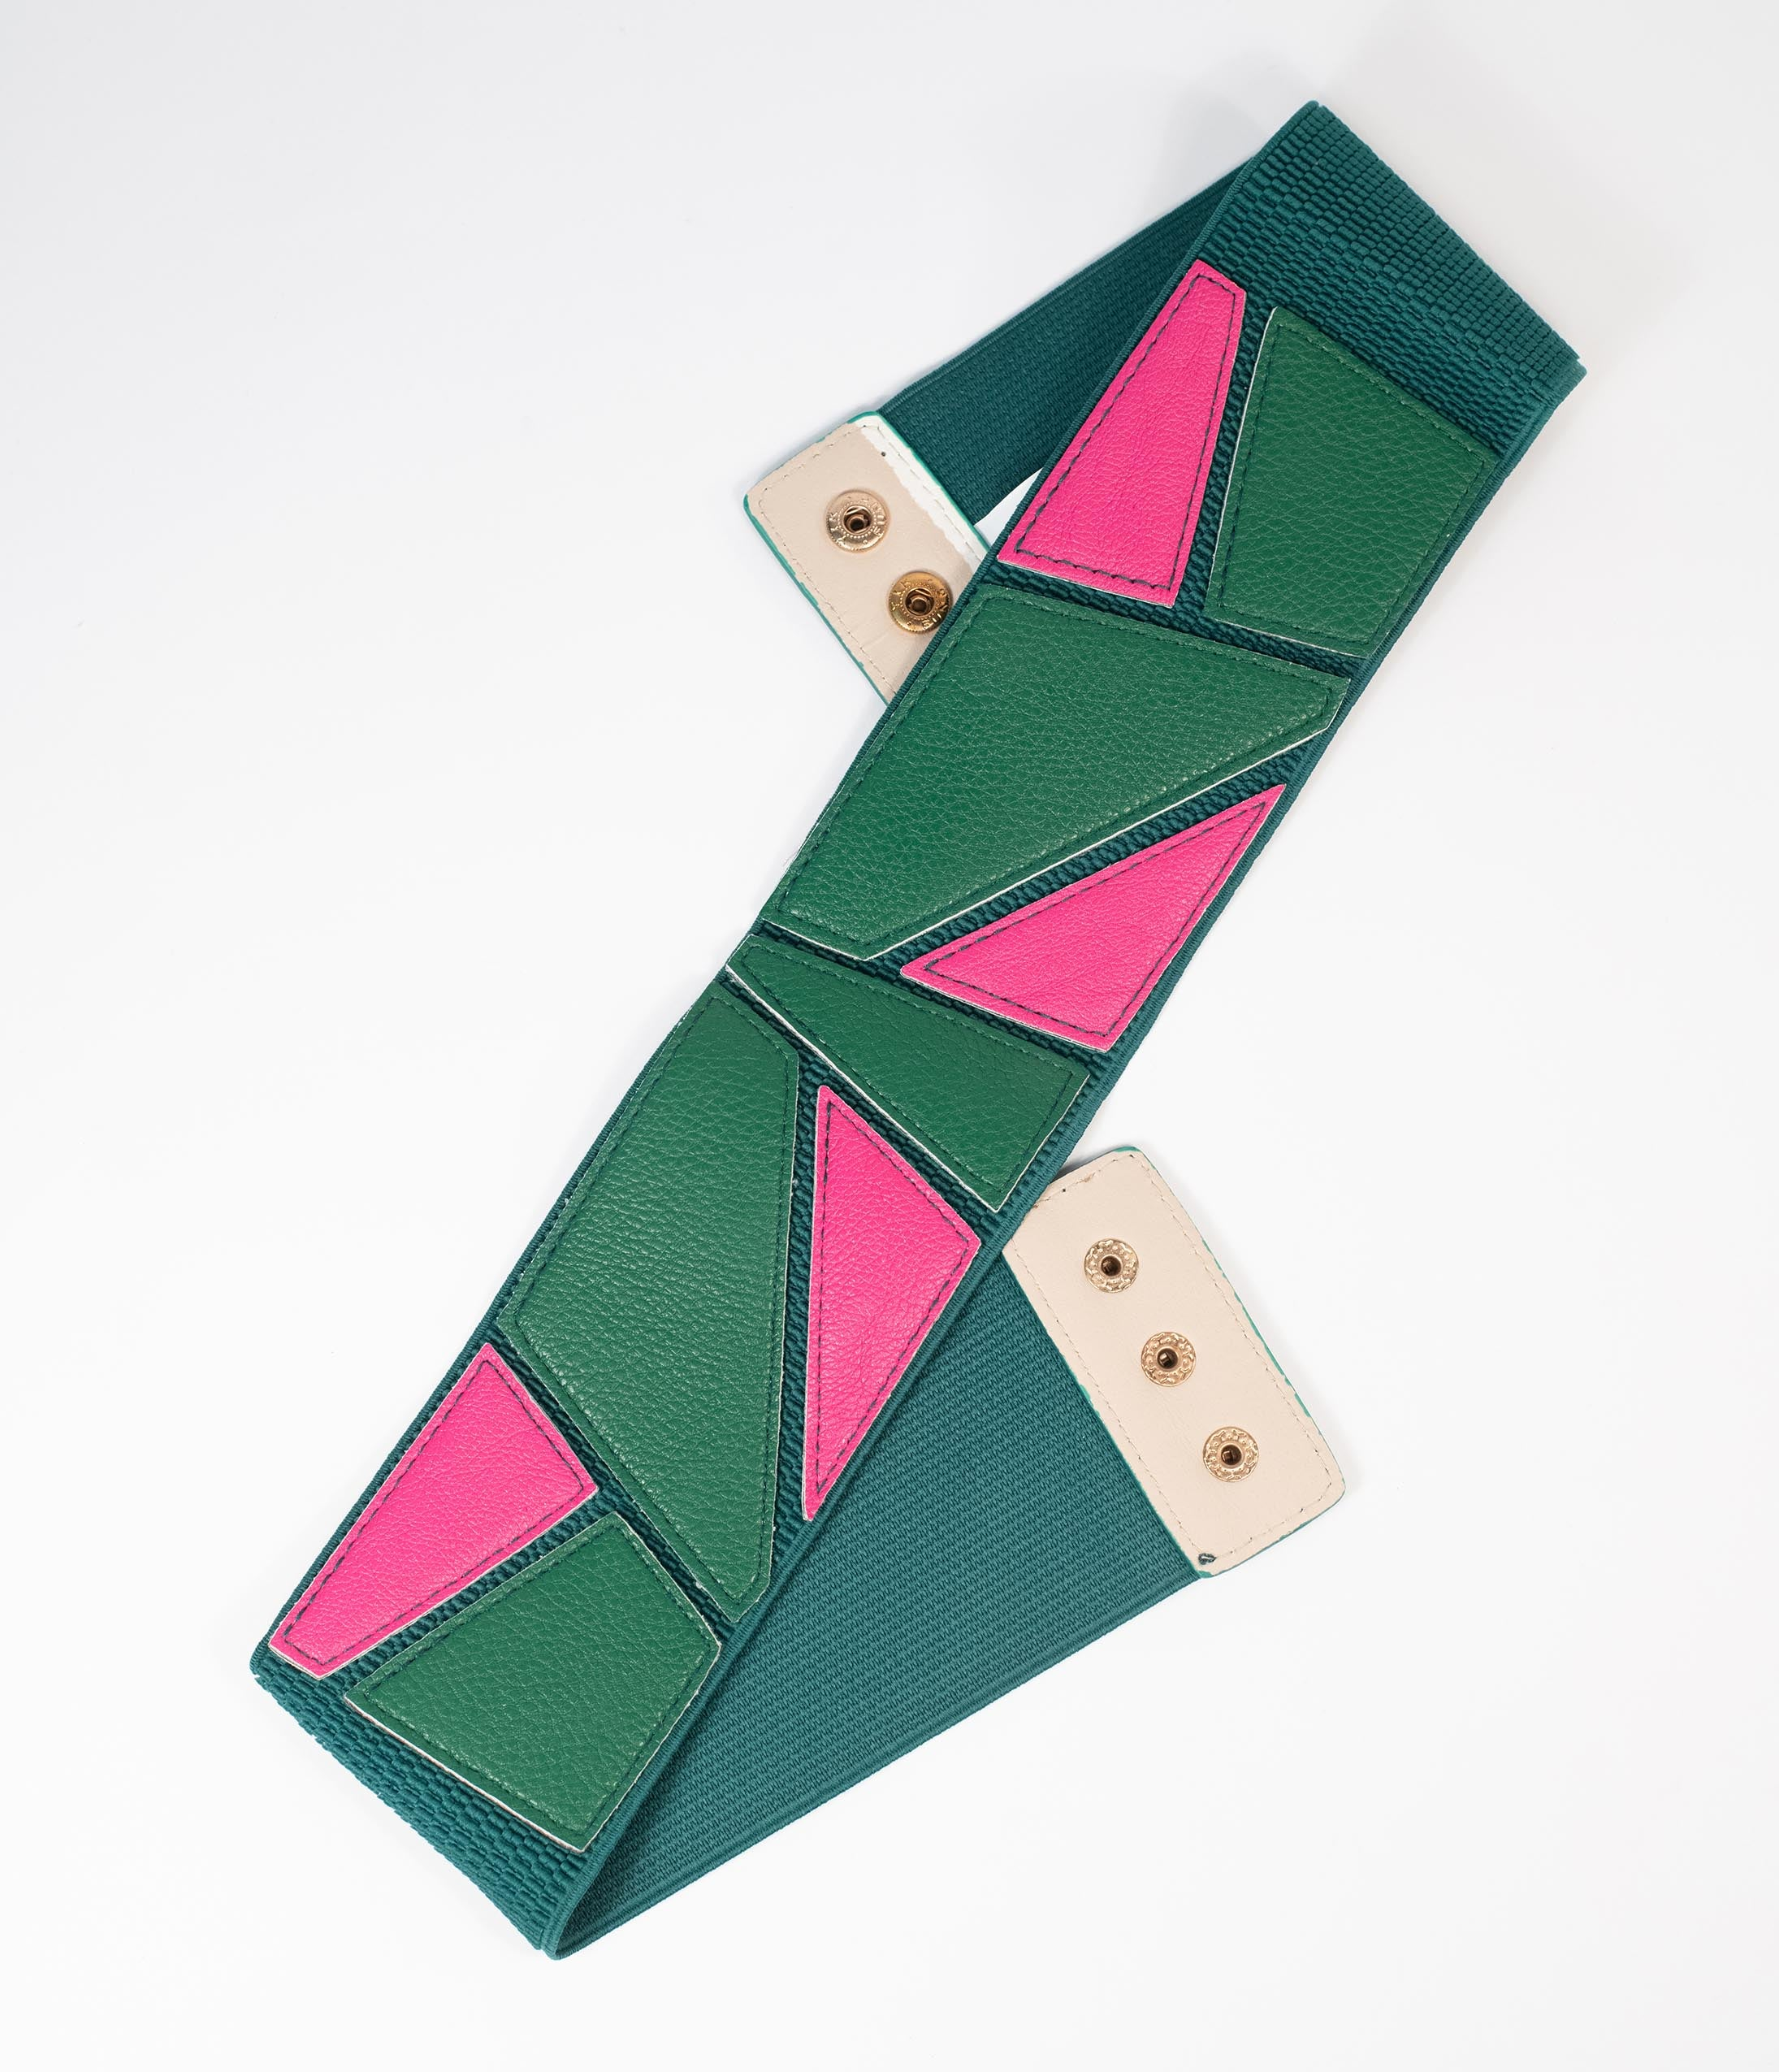 A History of Belts 1920-1960 Green  Pink Geometric Colorblock Cinch Belt $24.00 AT vintagedancer.com